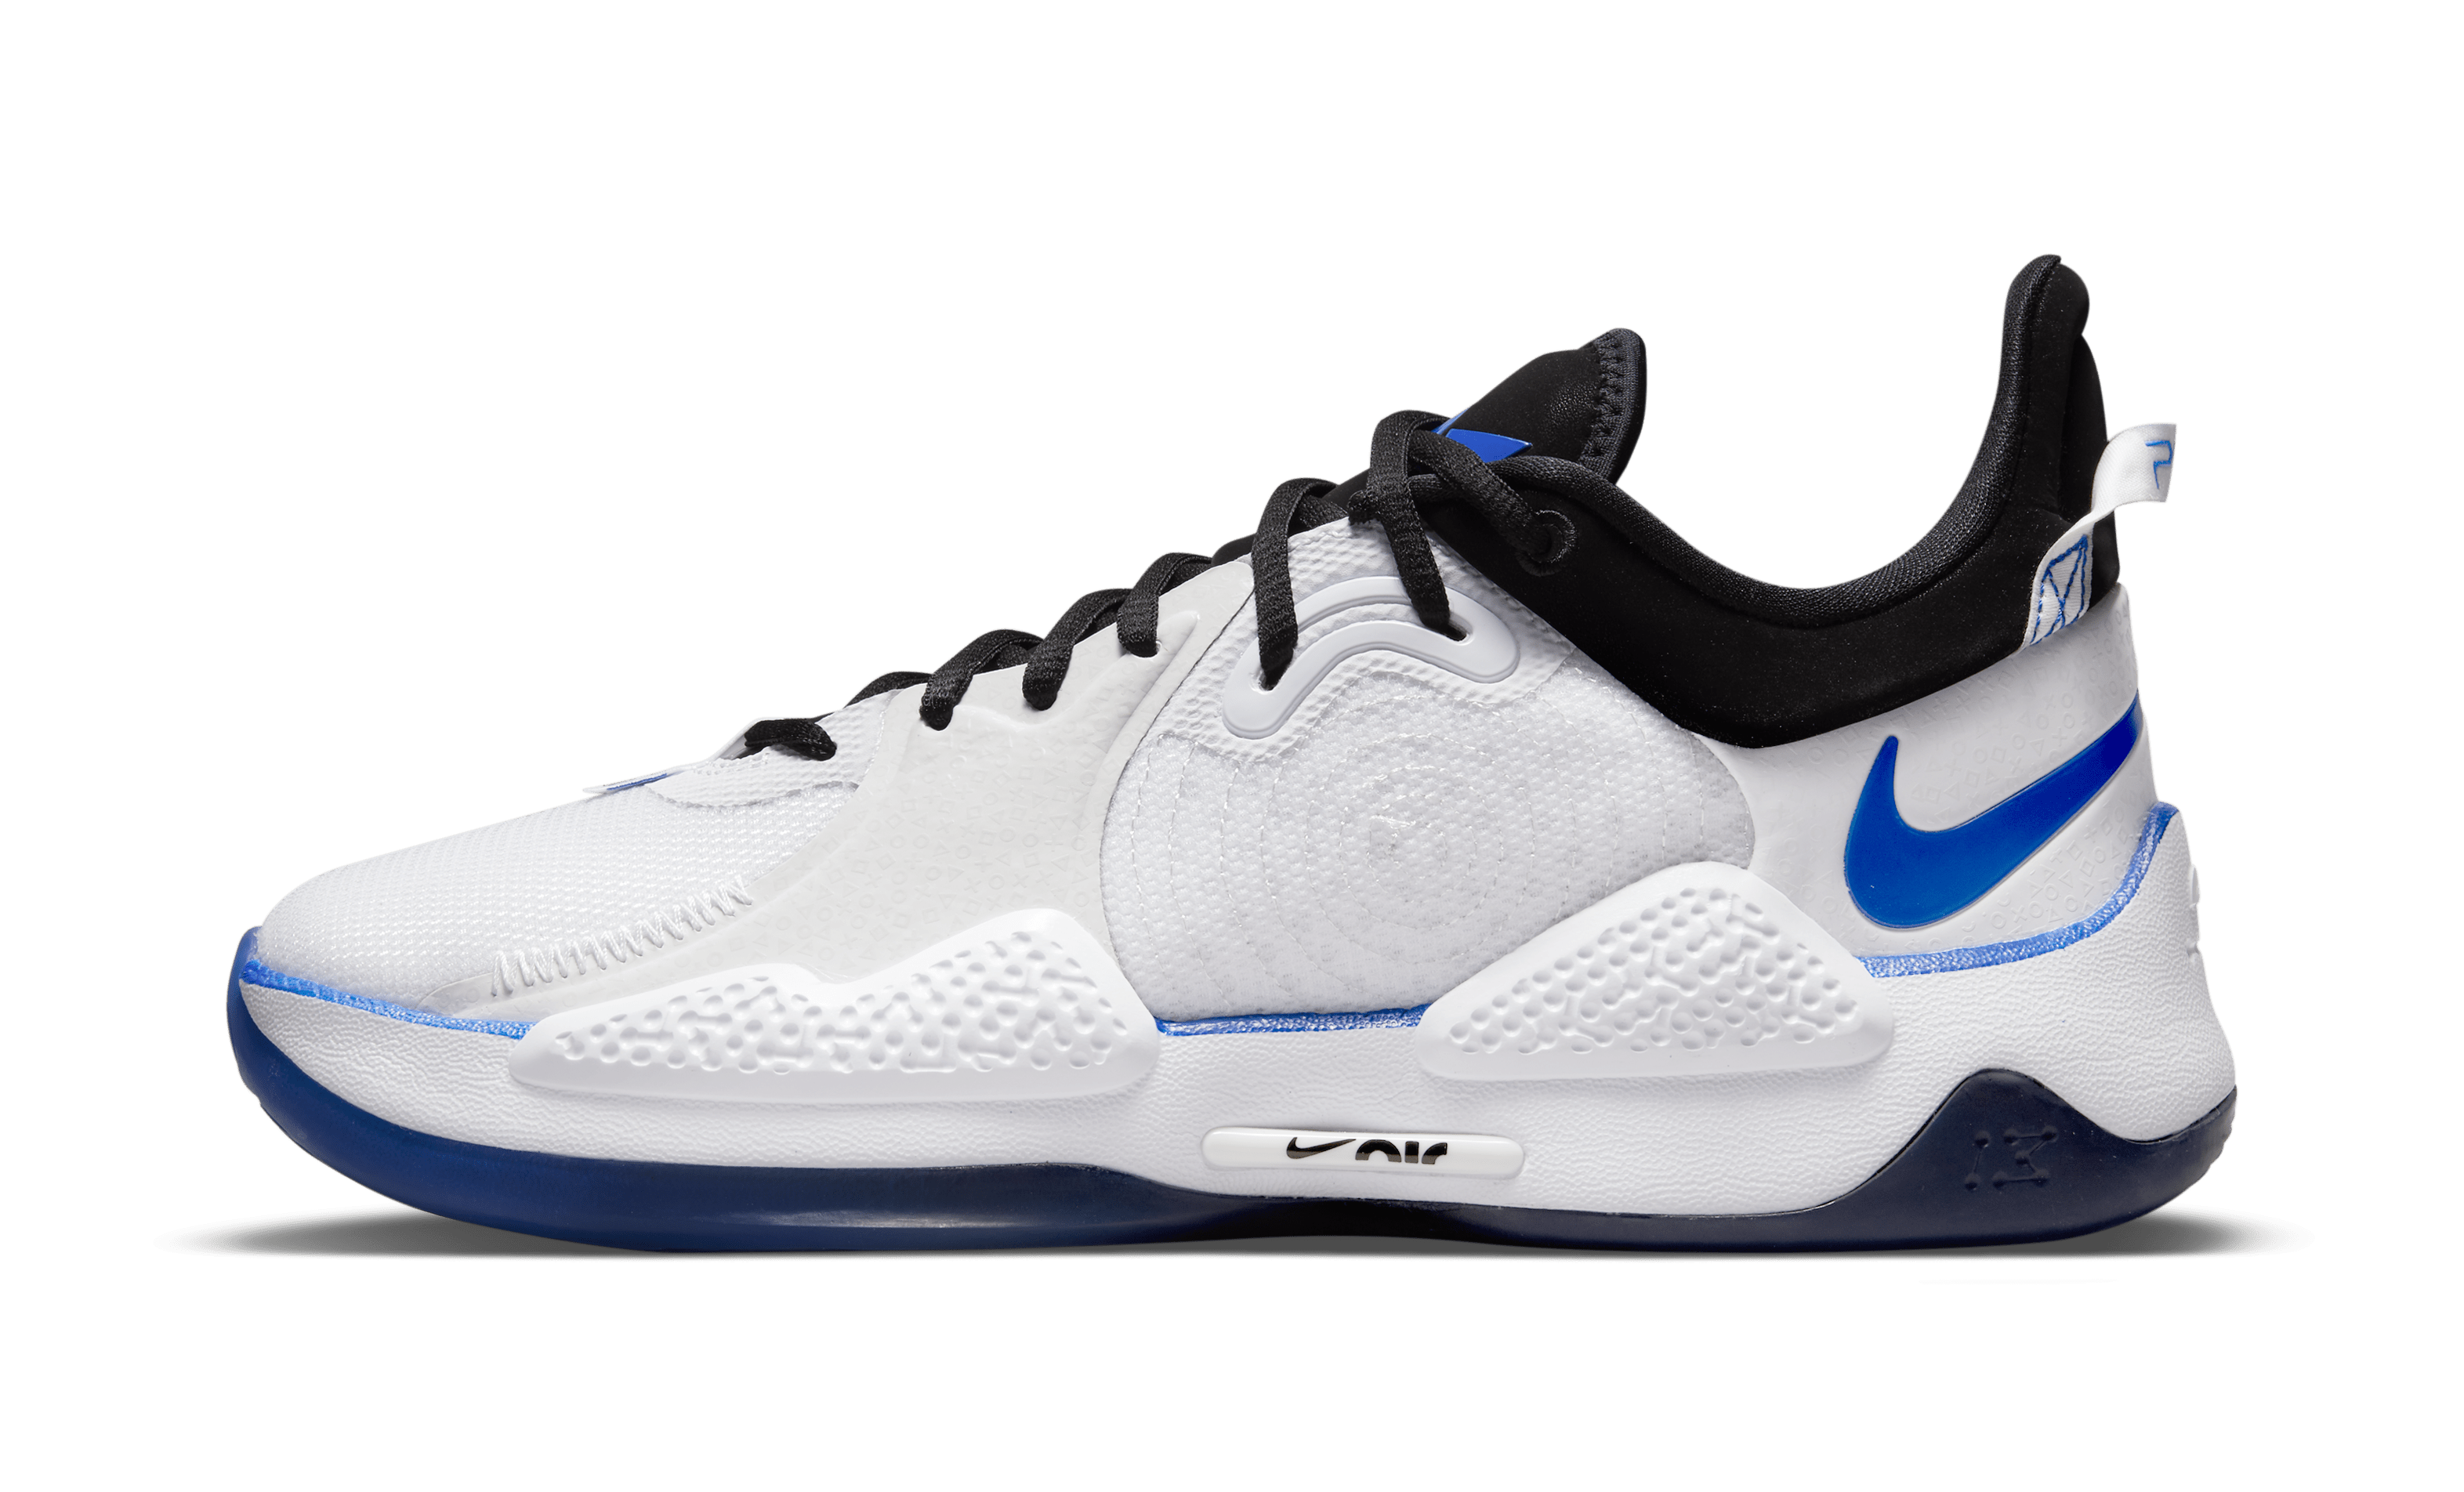 Playstation x Nike PG 5 'PS5' CW3144-100 (Lateral)